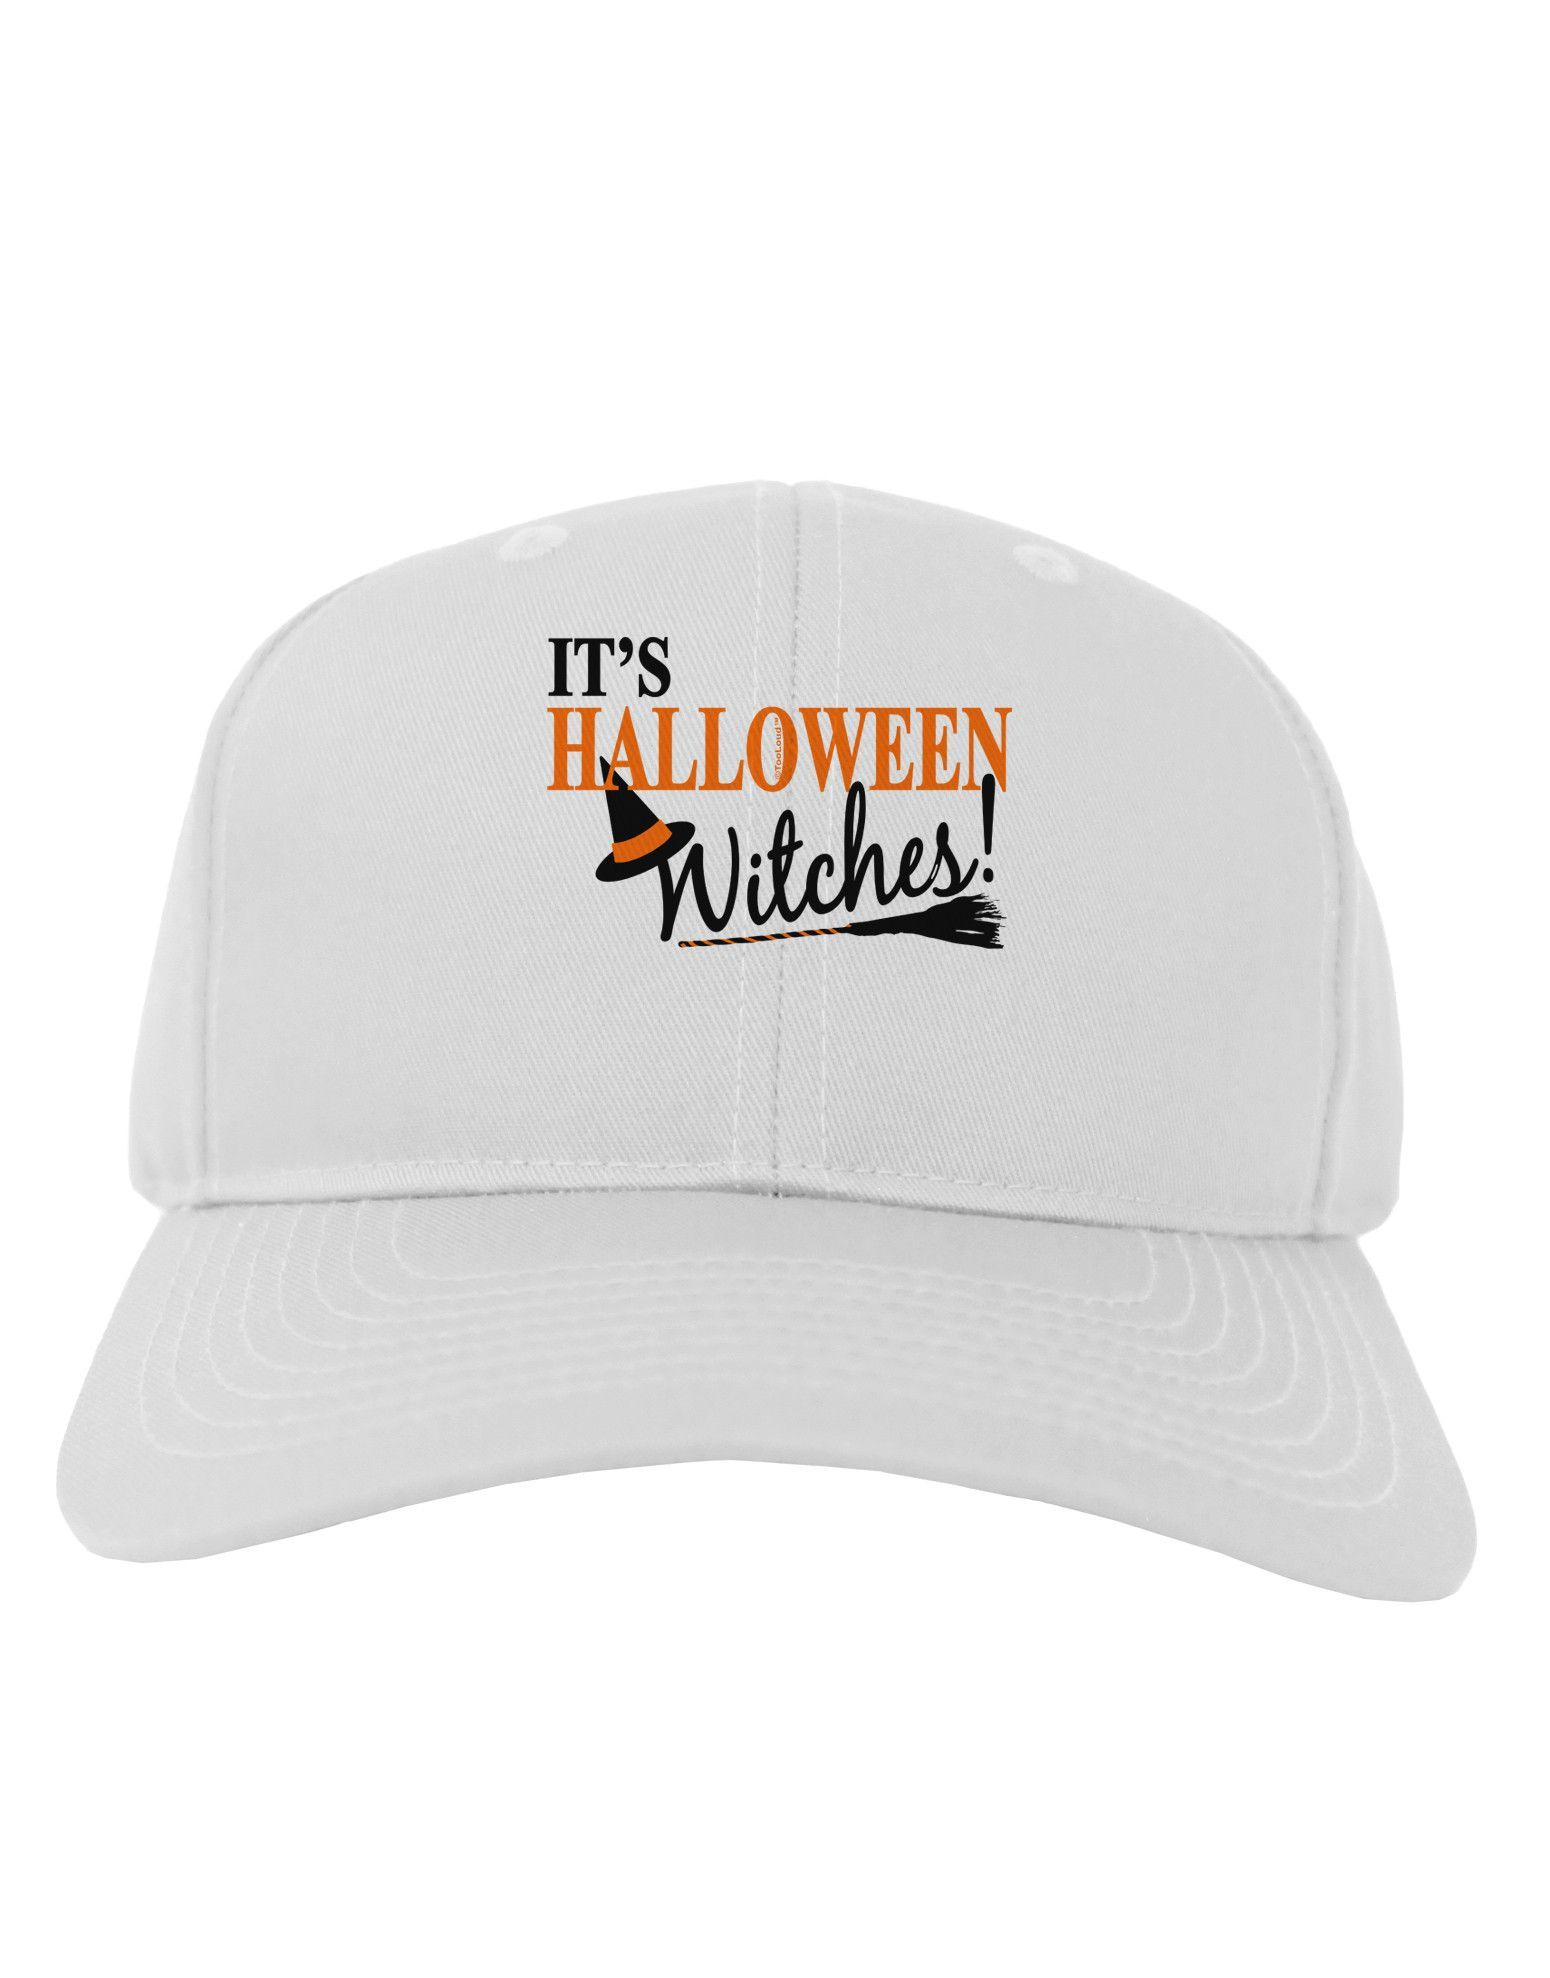 5a6b0f89d03 It s Halloween Witches Hat Adult Baseball Cap Hat